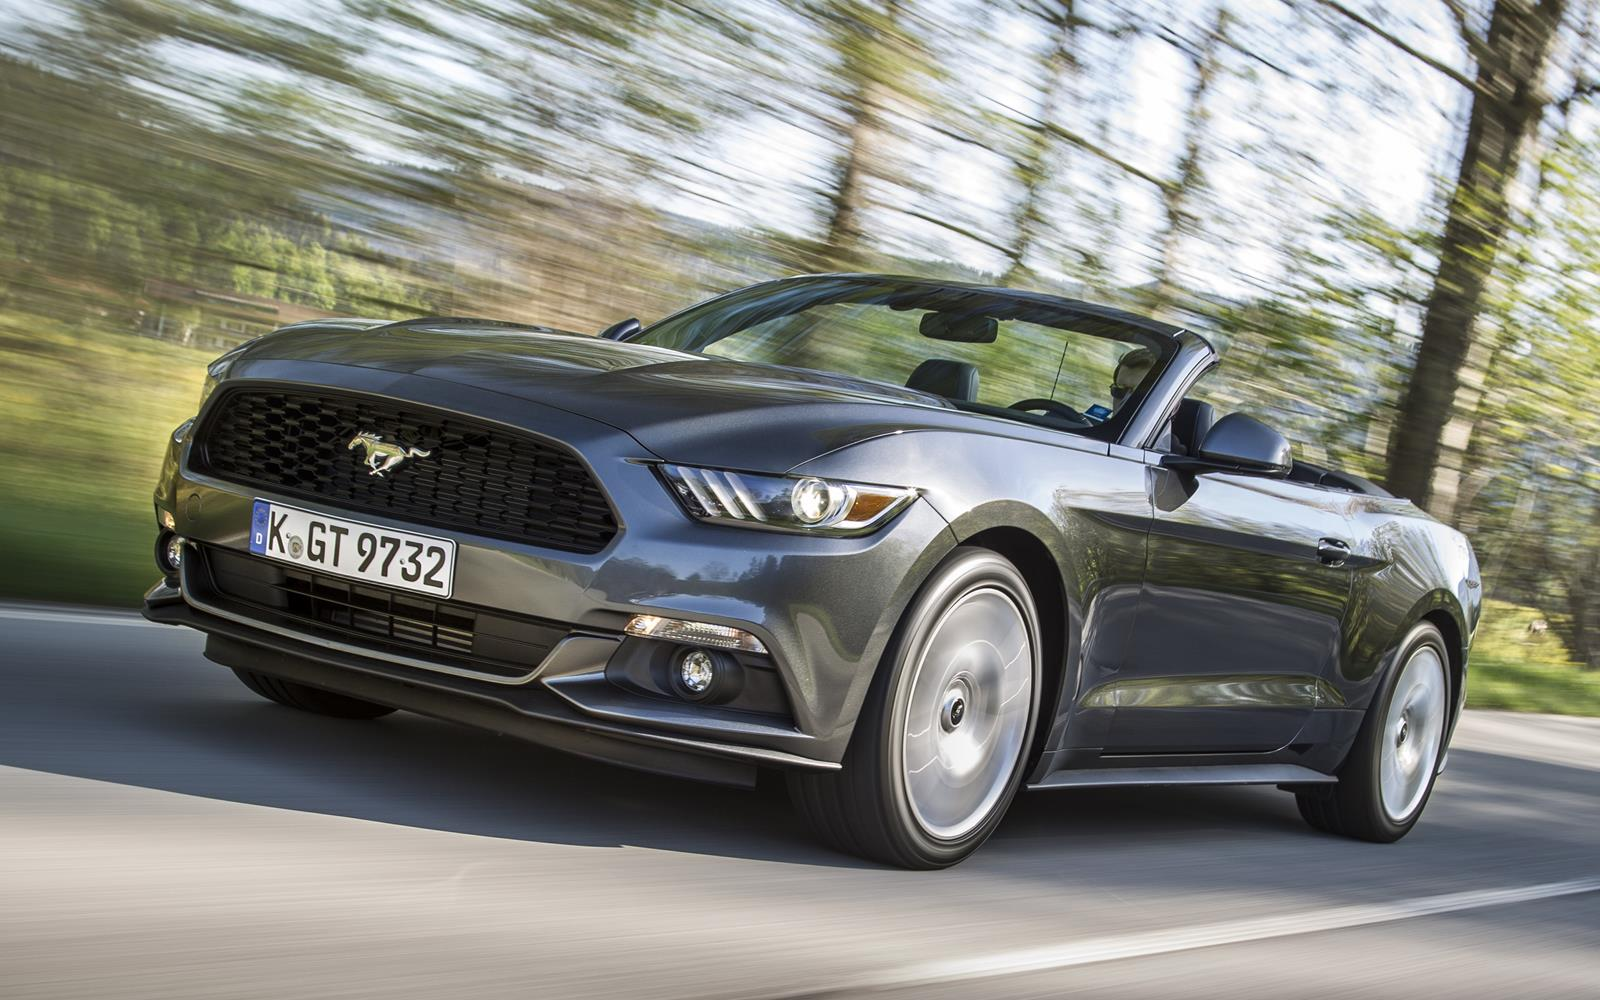 Ford Mustang 2.3 EcoBoost Convertible 2015 08